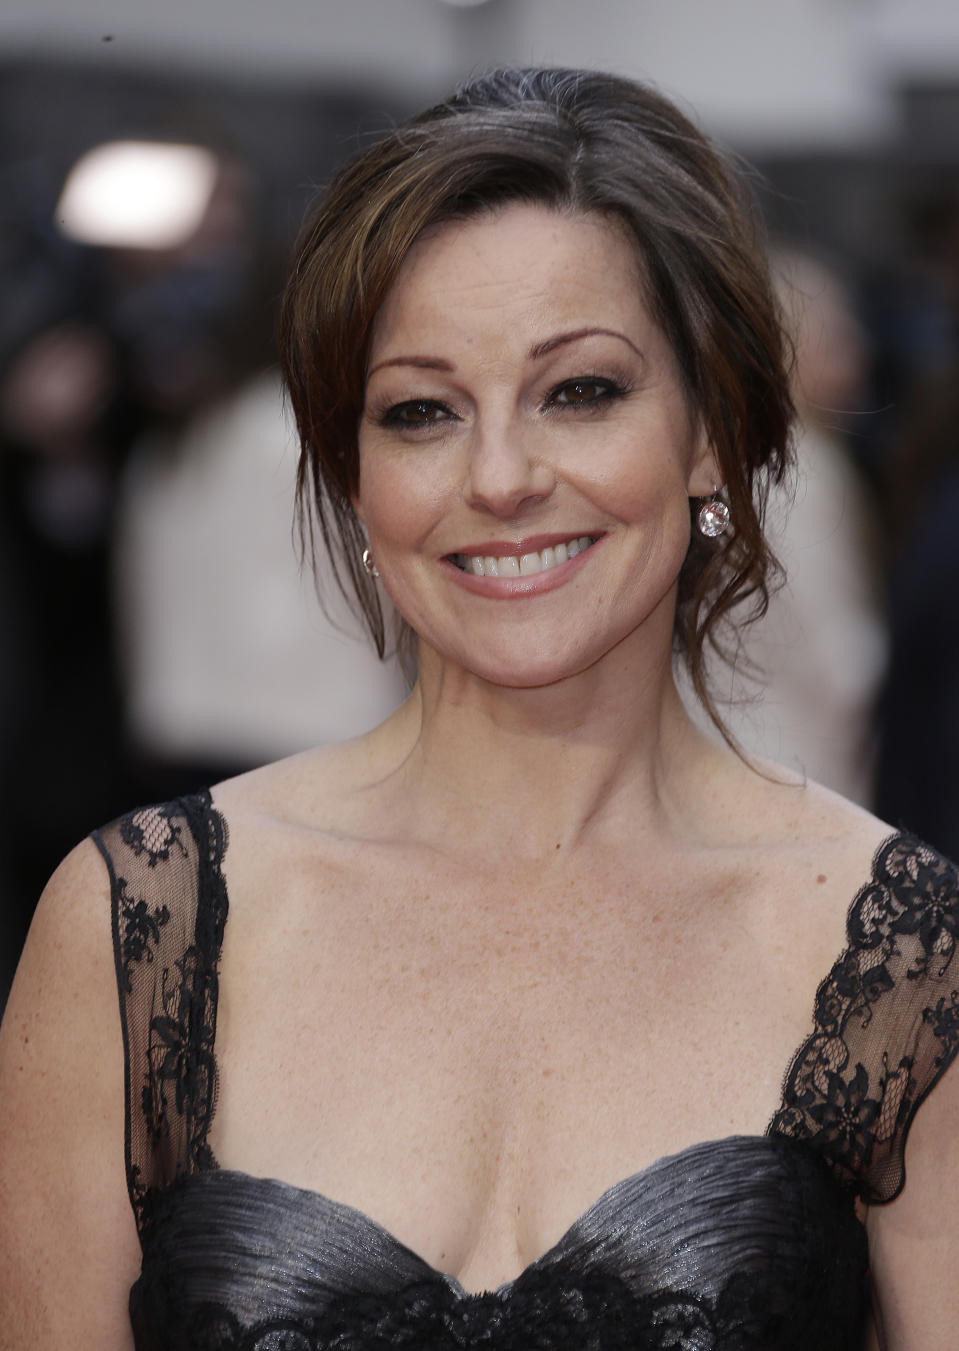 Ruthie Henshall poses for photographers upon arrival at the Olivier Awards at the Royal Opera House in central London, Sunday, April 12, 2015. The Laurence Olivier Awards are presented annually by the Society of London Theatre to recognise excellence in professional theatre and were renamed in honour of the British actor, in 1984. (Photo by Joel Ryan/Invision/AP)